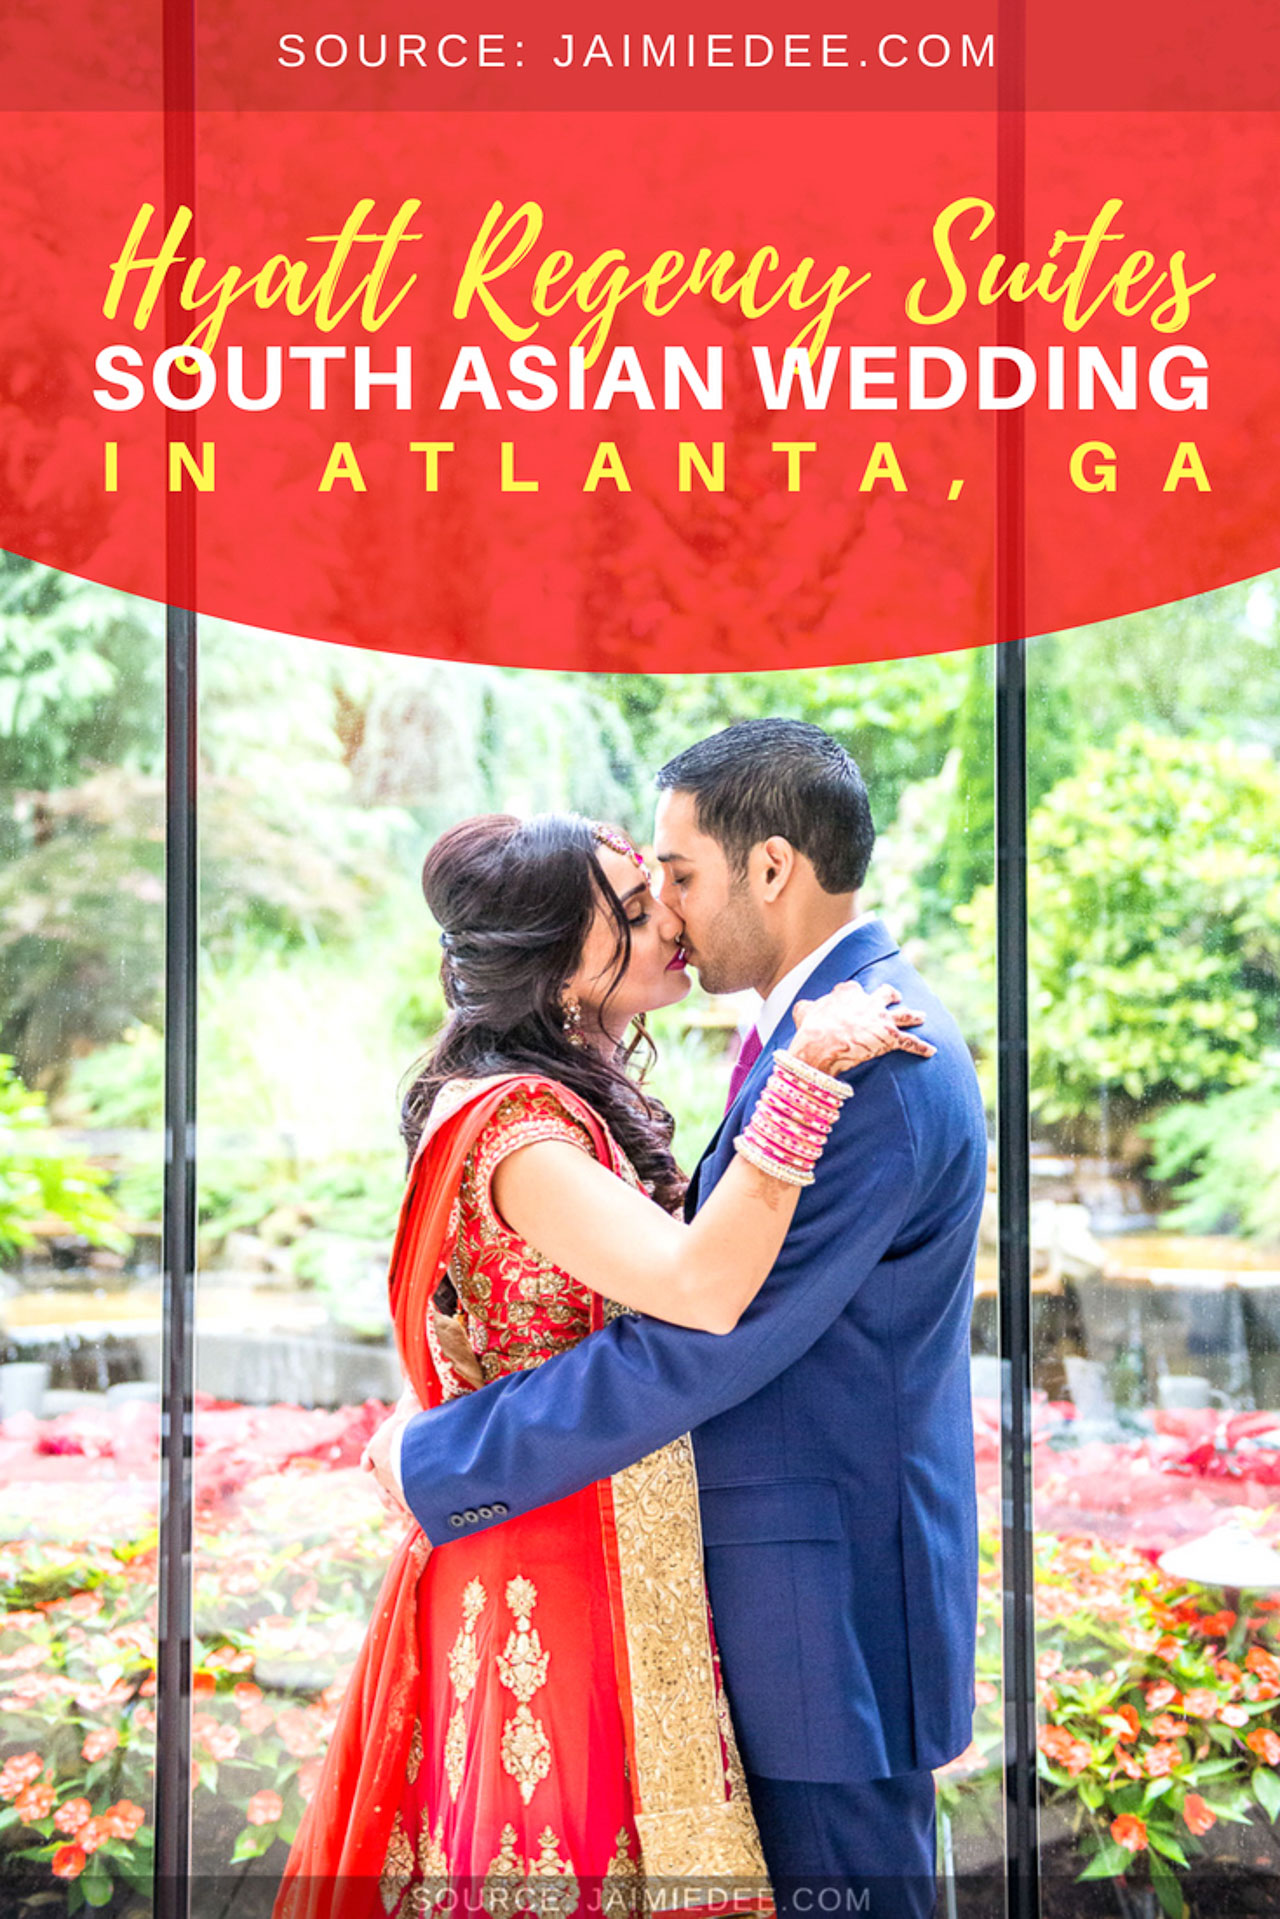 Hyatt-Regency-Suites-Atlanta-Northwest-Indian-Wedding-Cover-0002